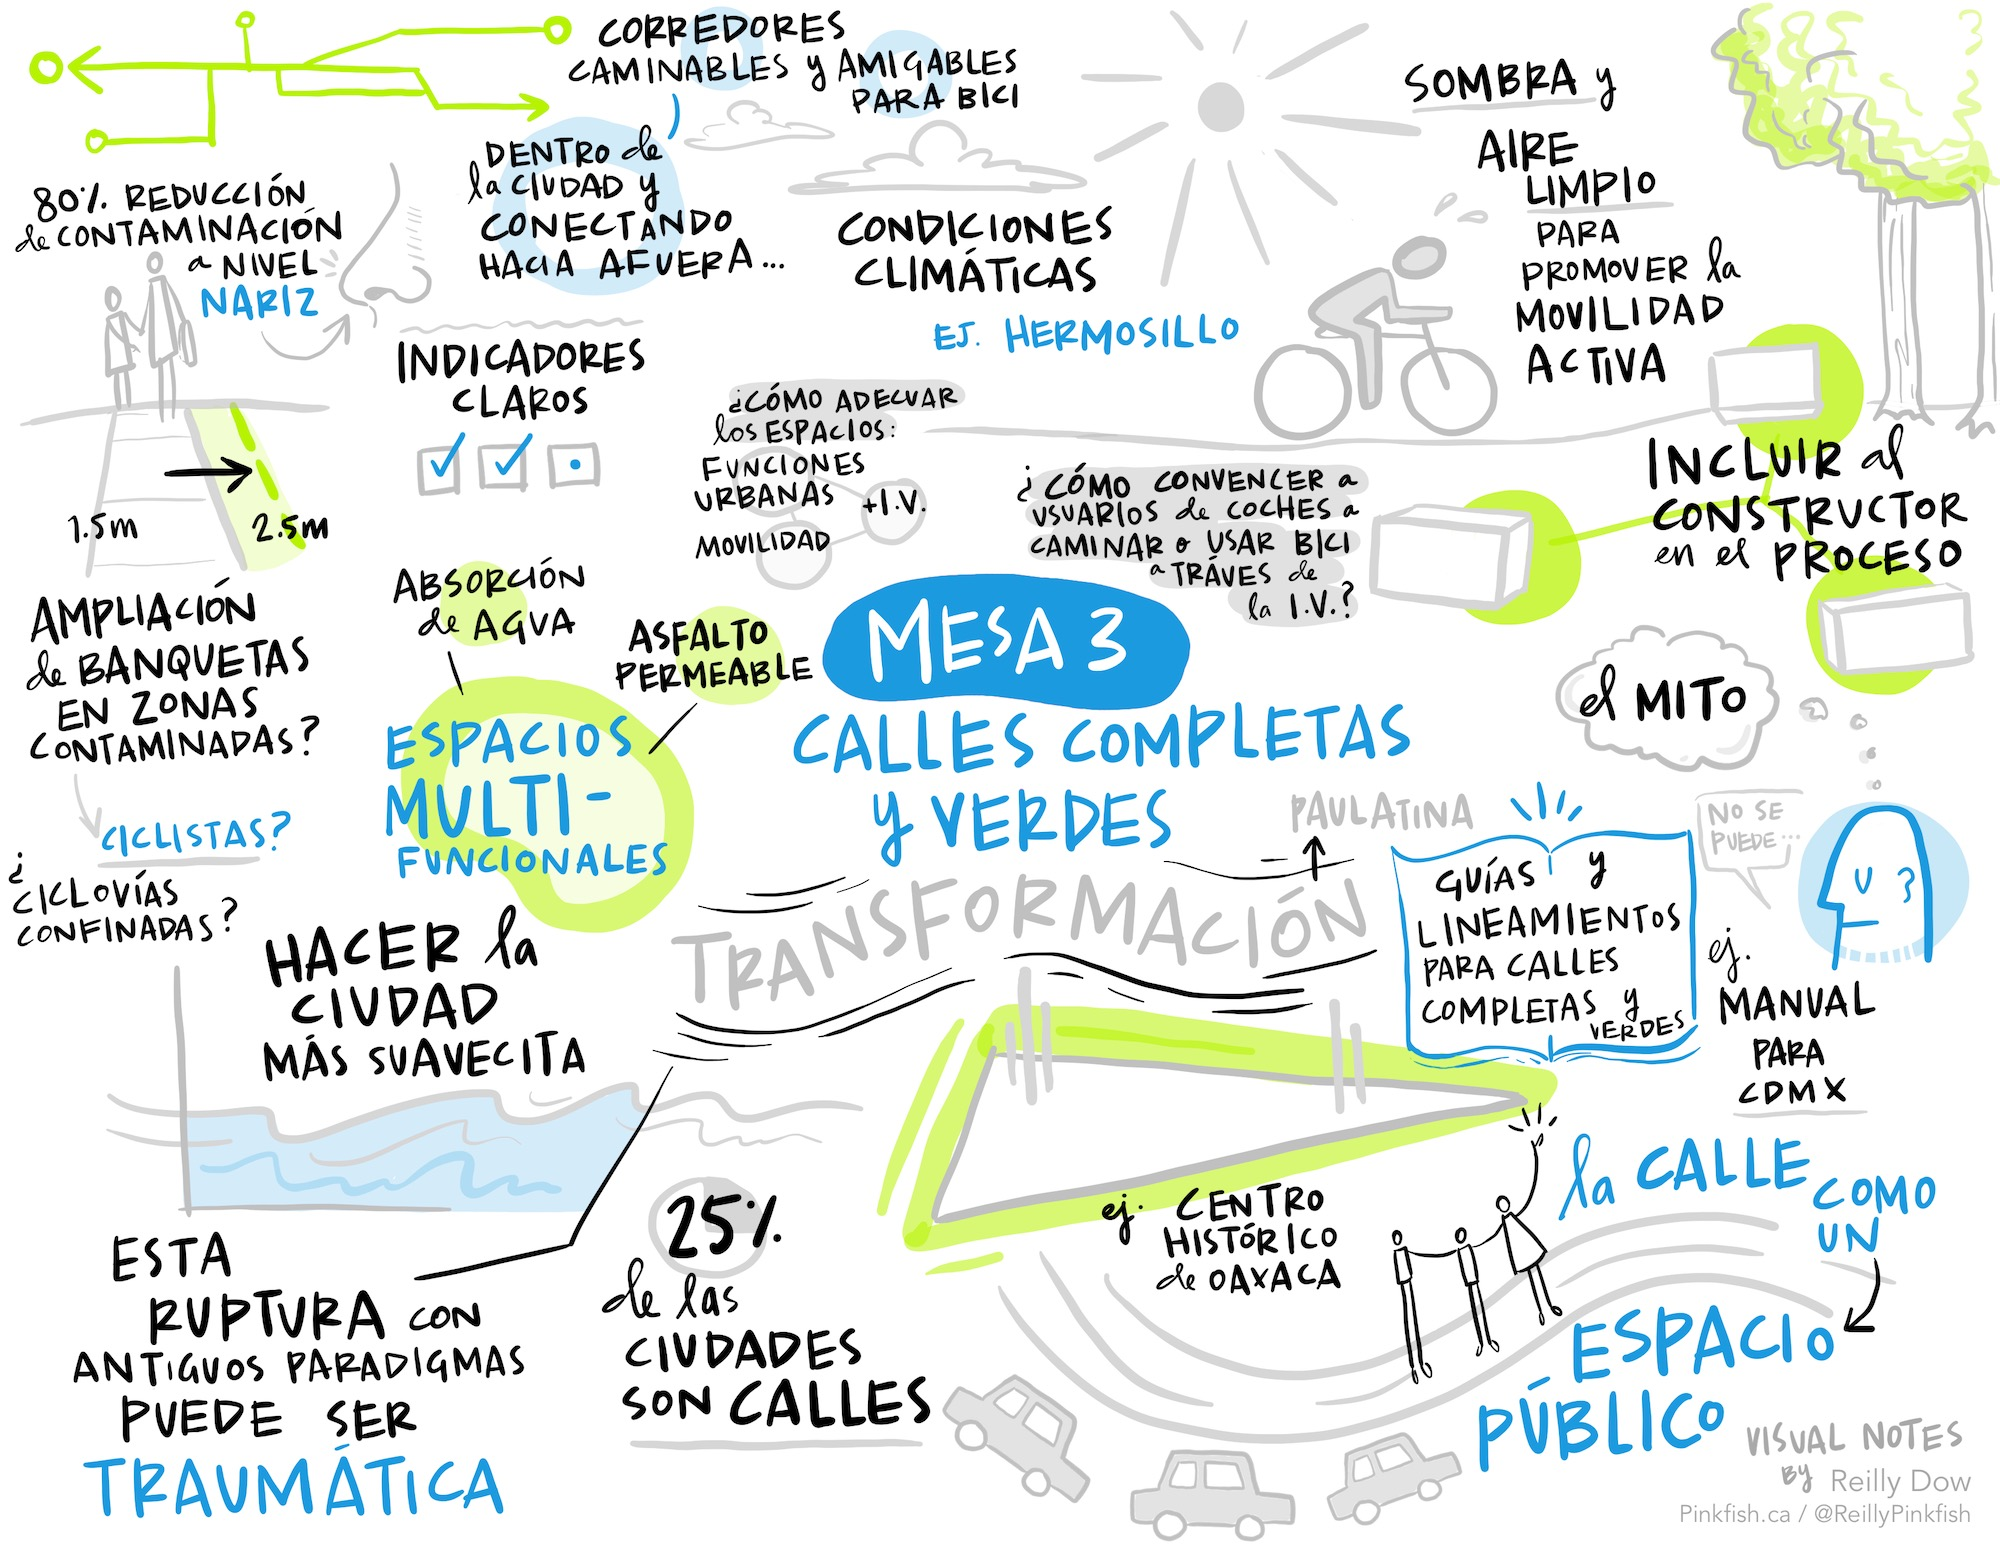 Digital scribing in Spanish on green infrastructure